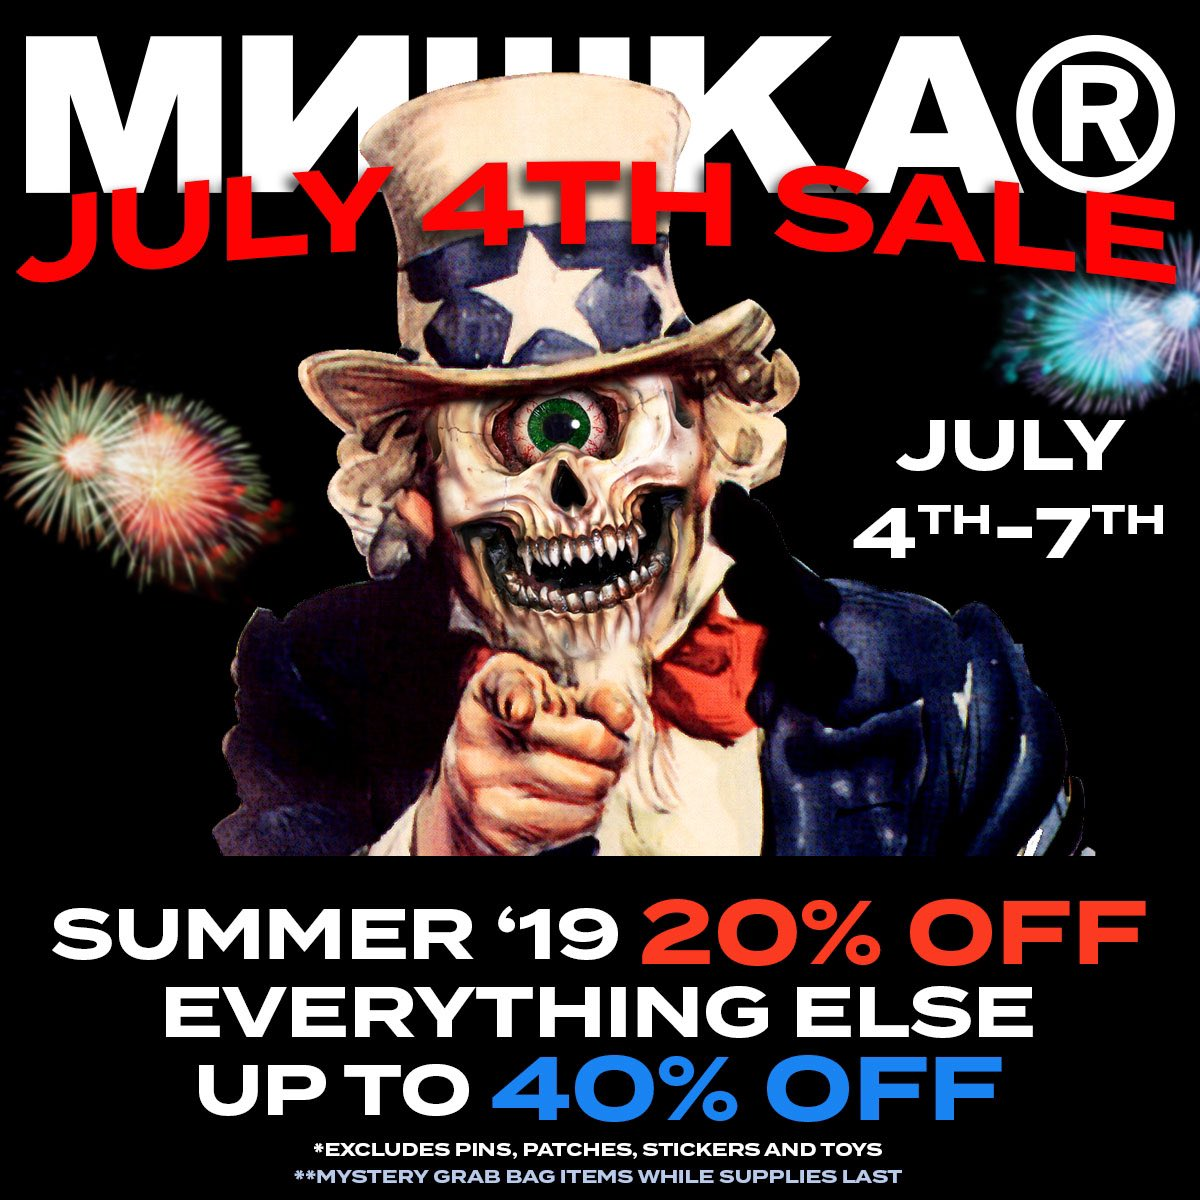 The Mishka 4th of July sale starts now! Mishkanyc.com/store